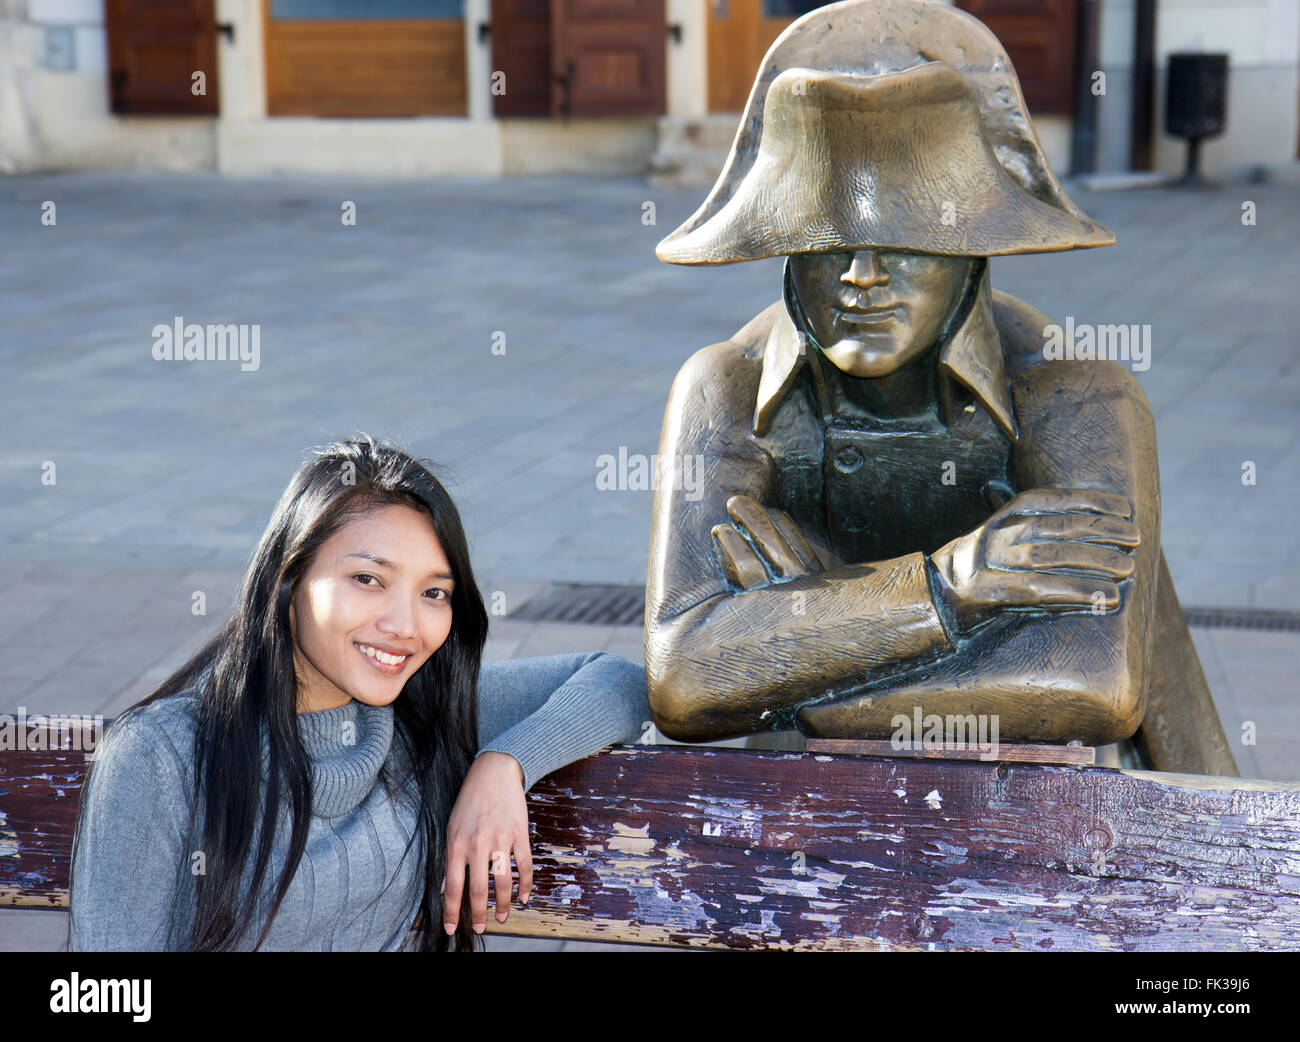 Asian tourist woman sitting on bench with Napoleon soldier at the Main square, Bratislava, Slovakia Stock Photo